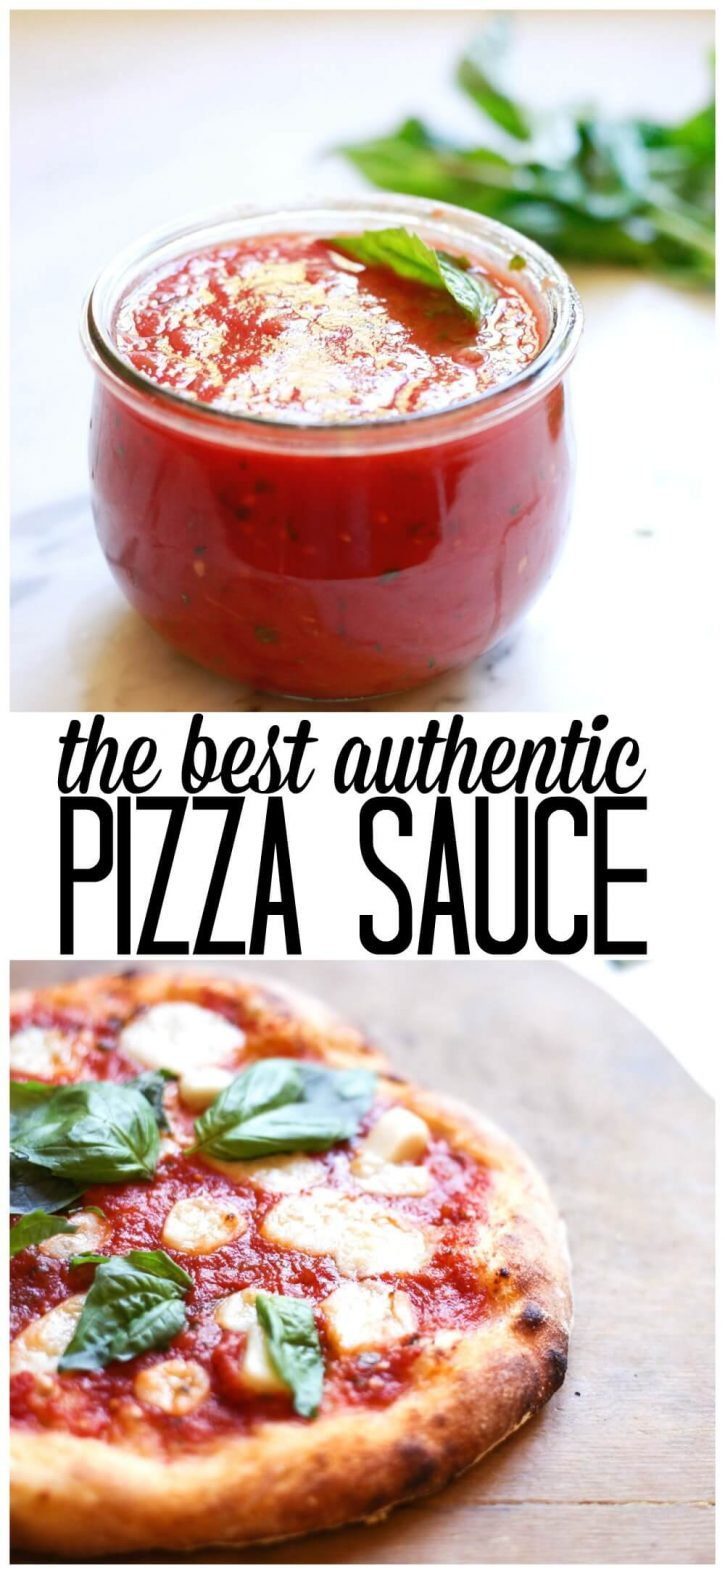 How to make the best easy pizza sauce at home from scratch. This homemade pizza sauce recipe is made with tomatoes and fresh basil.